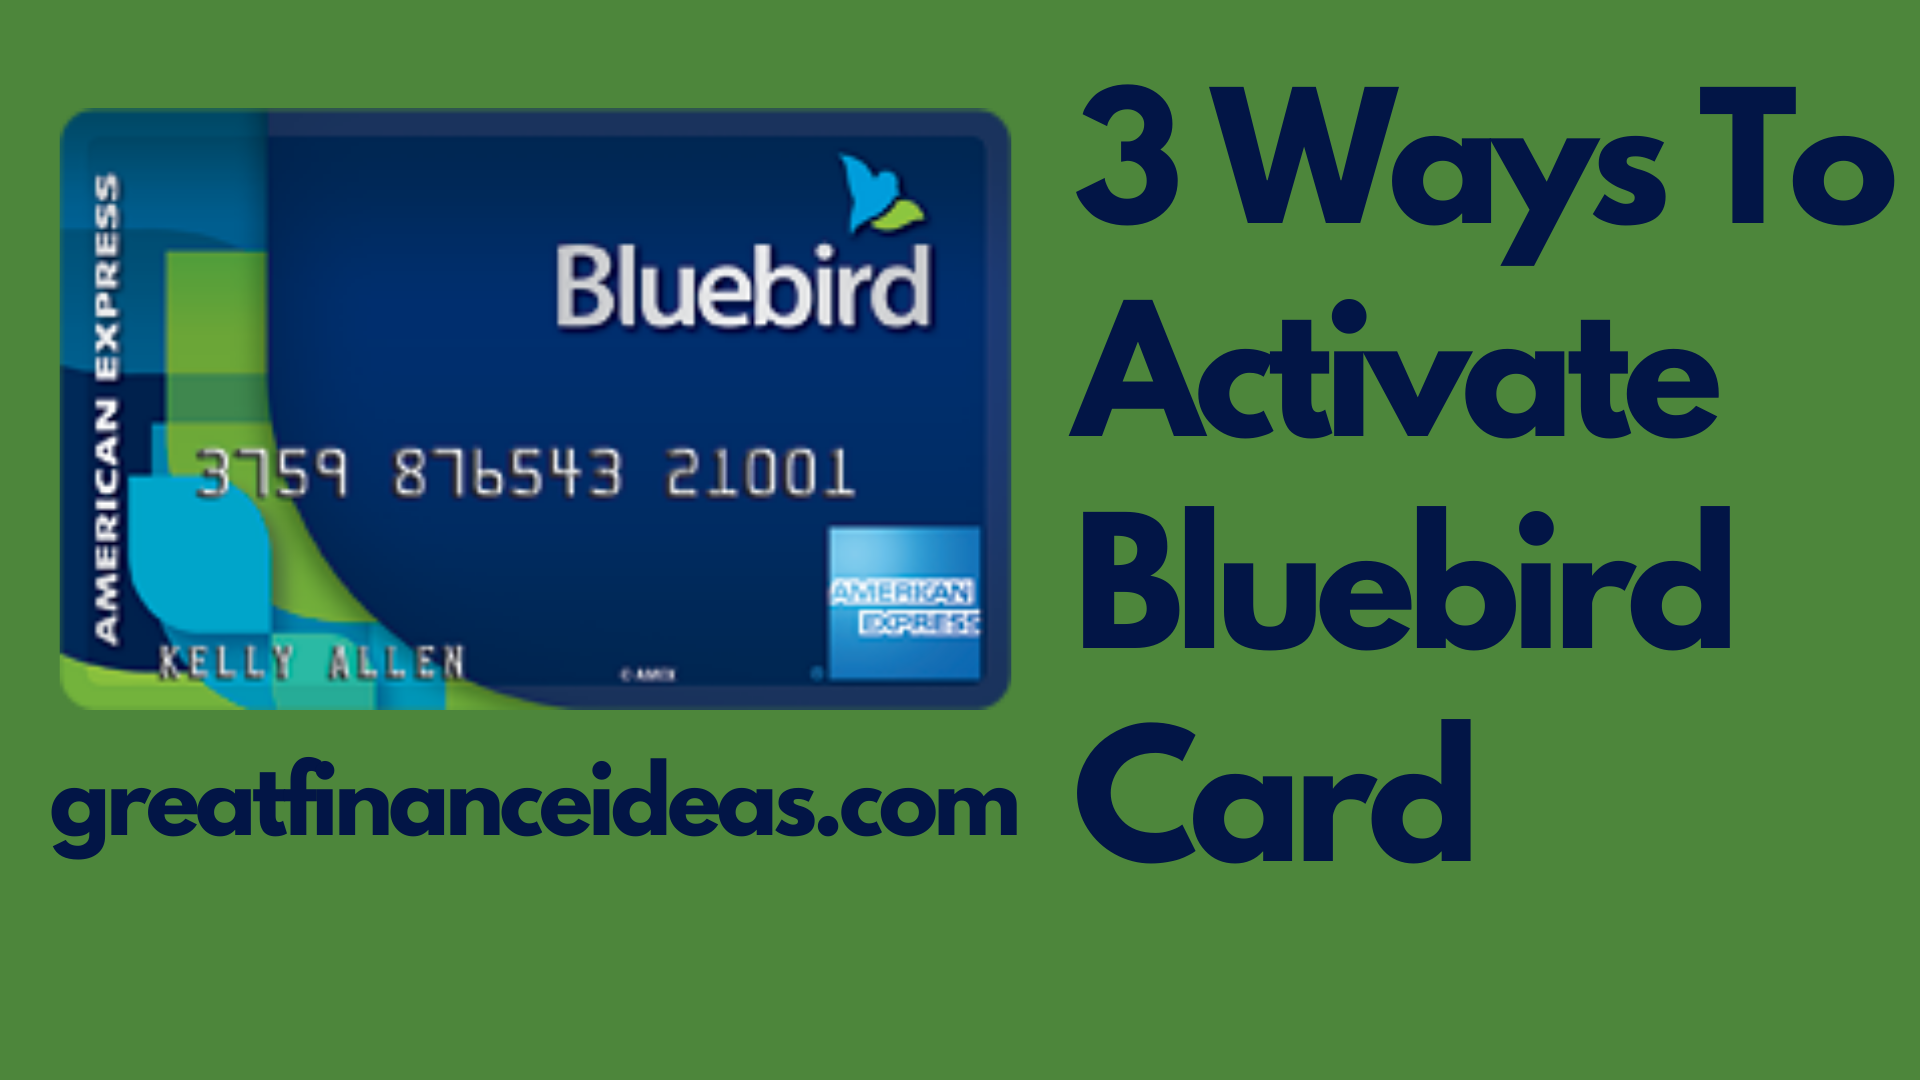 Activate Bluebird Card